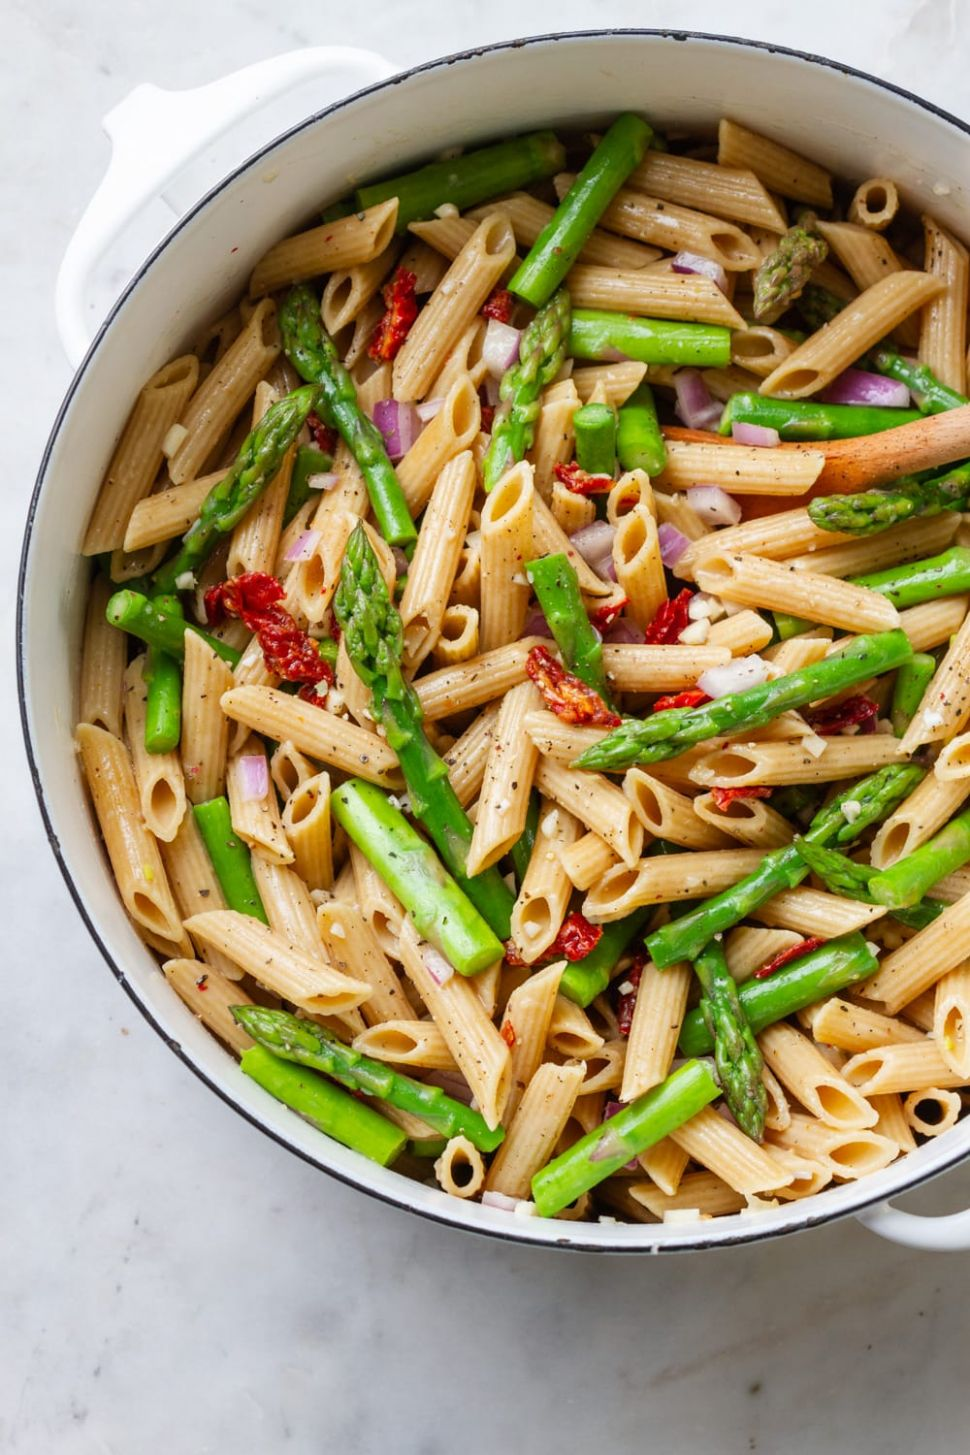 EASY LEMONY ASPARAGUS PASTA SALAD - Recipes Pasta Asparagus